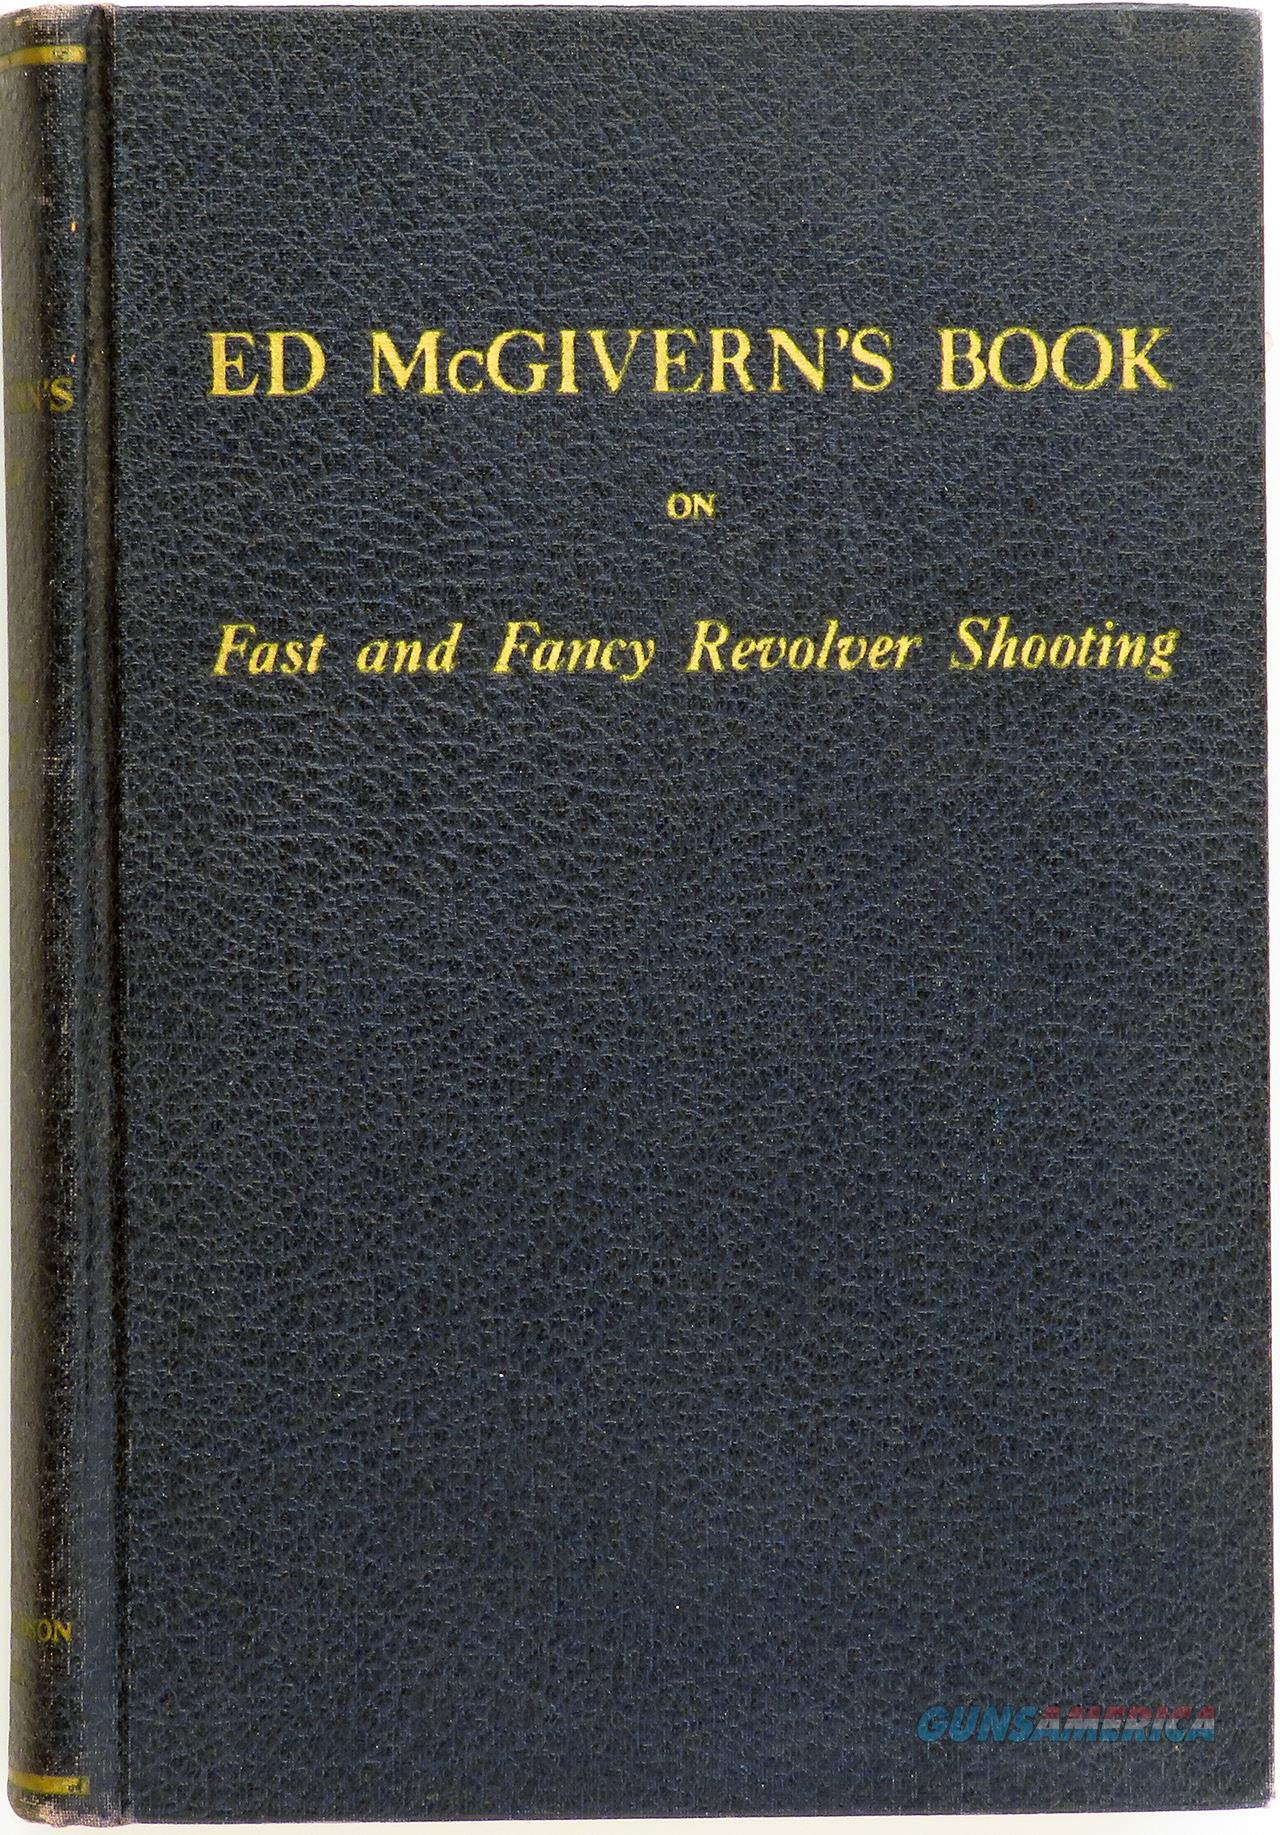 Ed McGivern's Book on Fast and Fancy Revolver Shooting, 1938, excellent, from the estate of Tom Siatos  Non-Guns > Books & Magazines